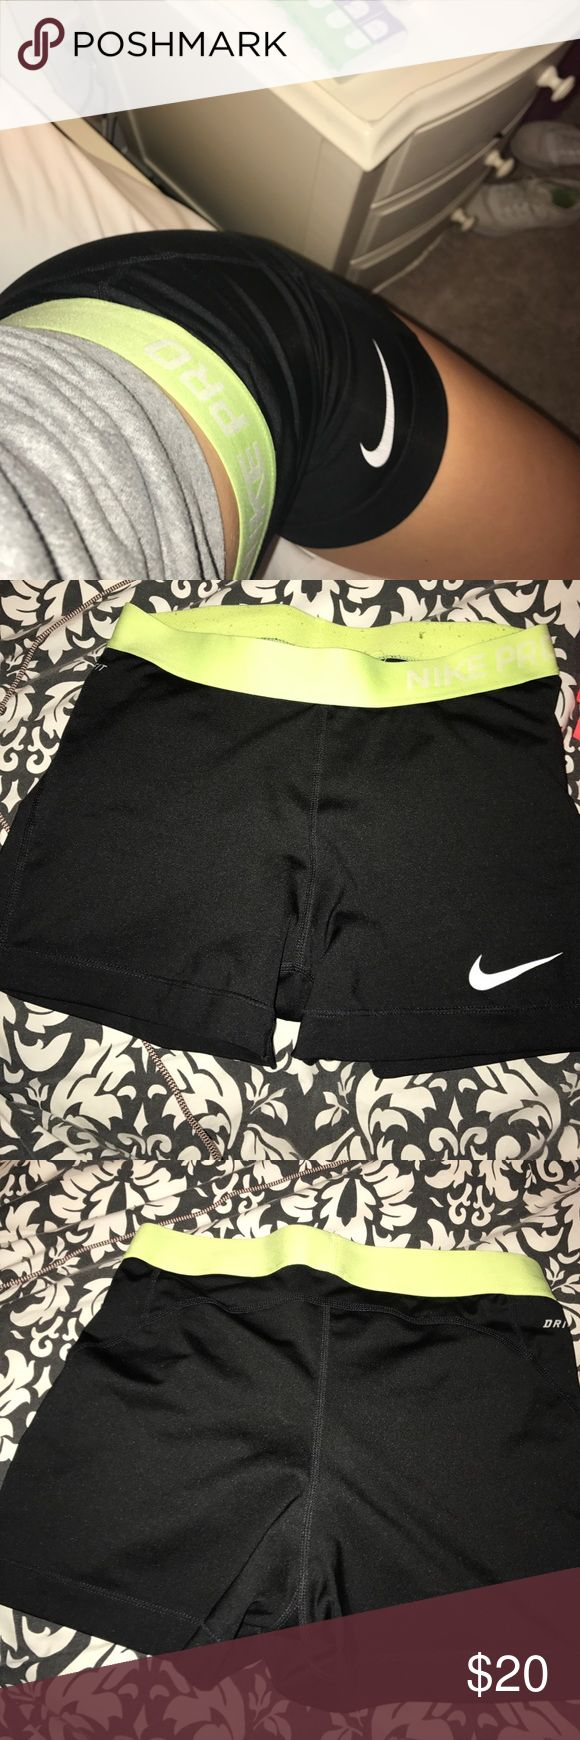 Nike Pros shorts Black NIKE pro compression shorts with a neon yellow waist band, size medium, good condition Nike Pants Track Pants & Joggers